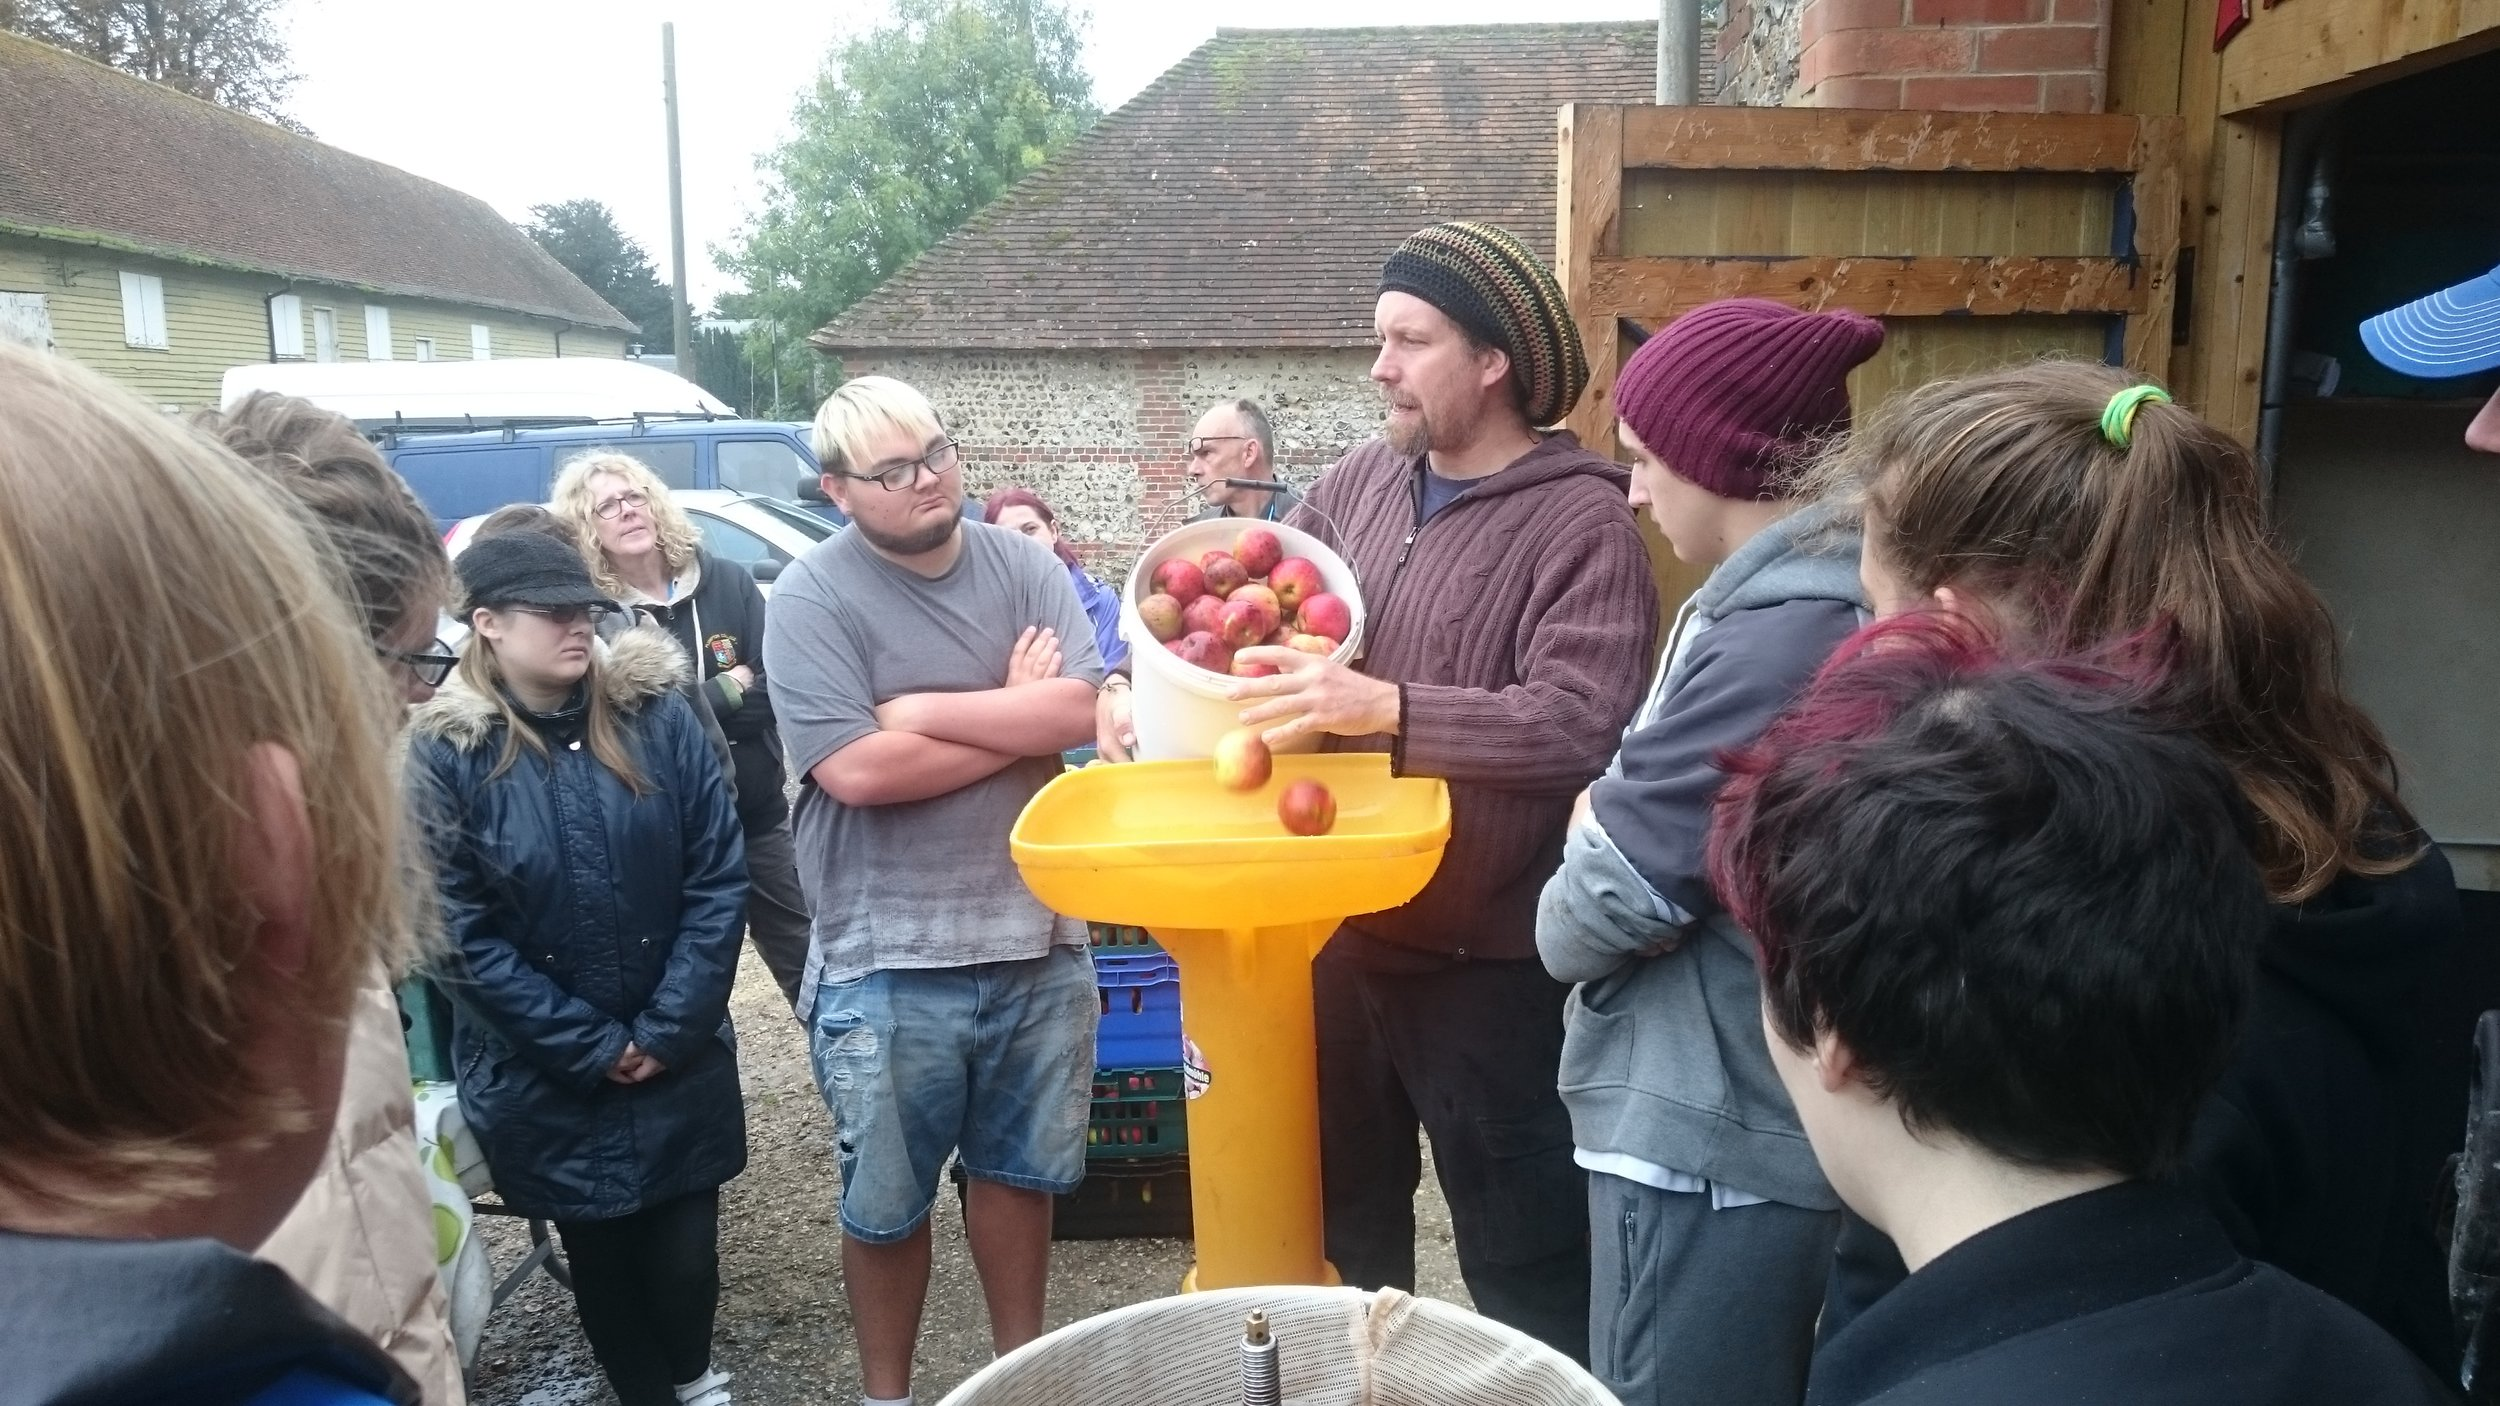 Tipping the apples into the macerator